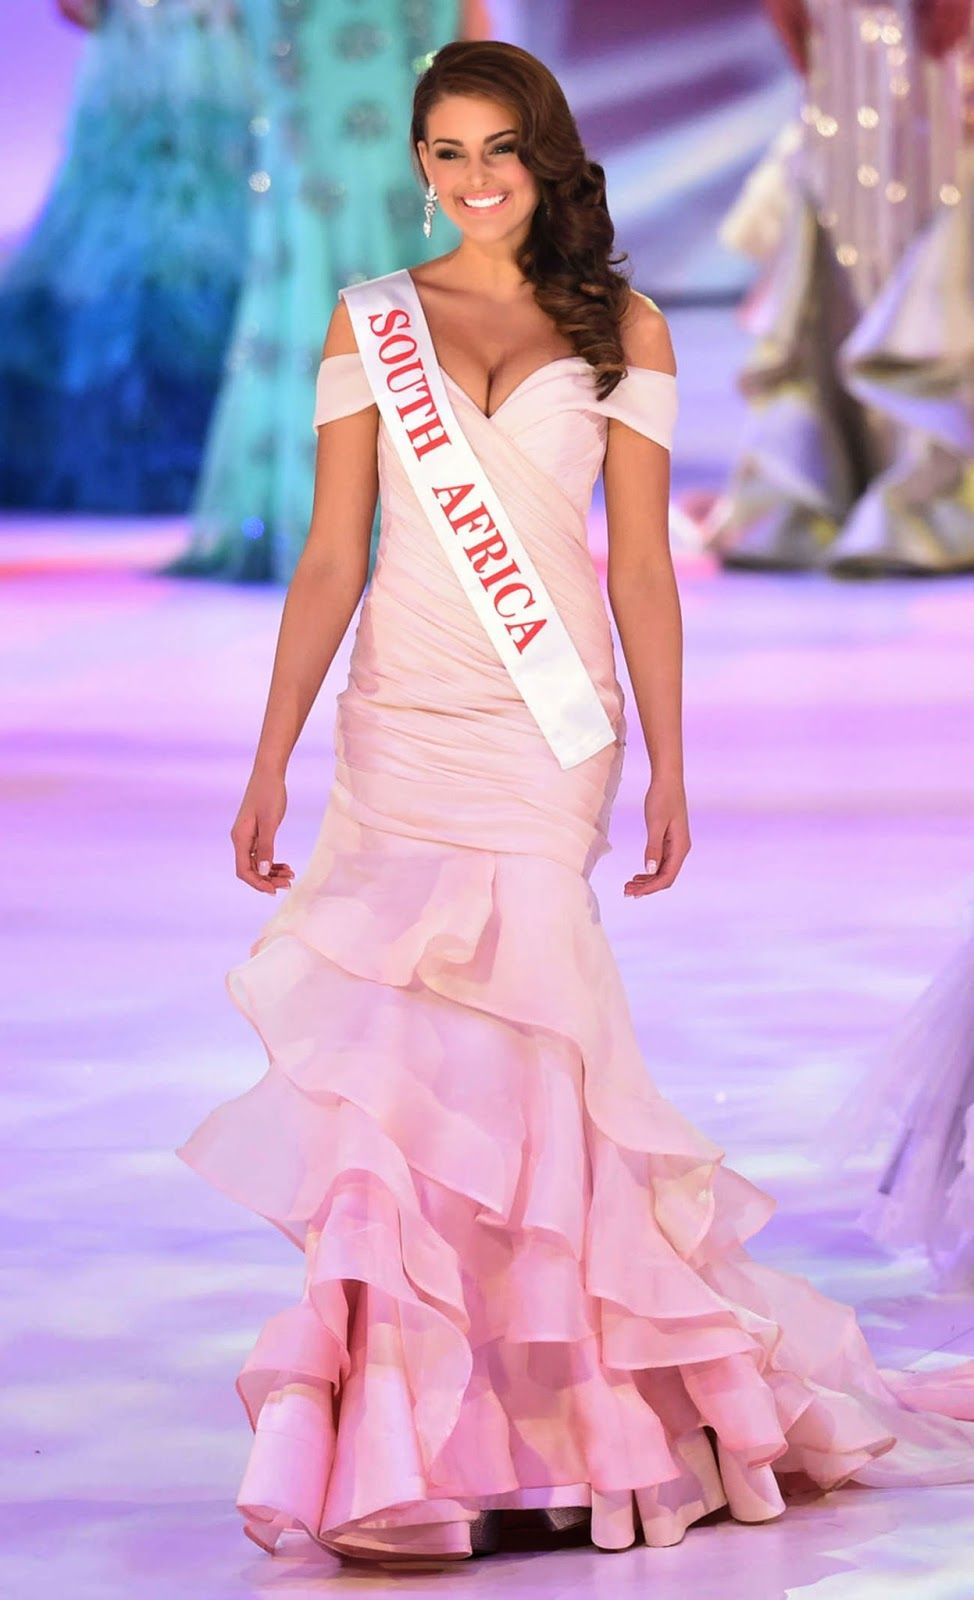 Miss South Africa Rolene Strauss is crowned the Miss World 2014